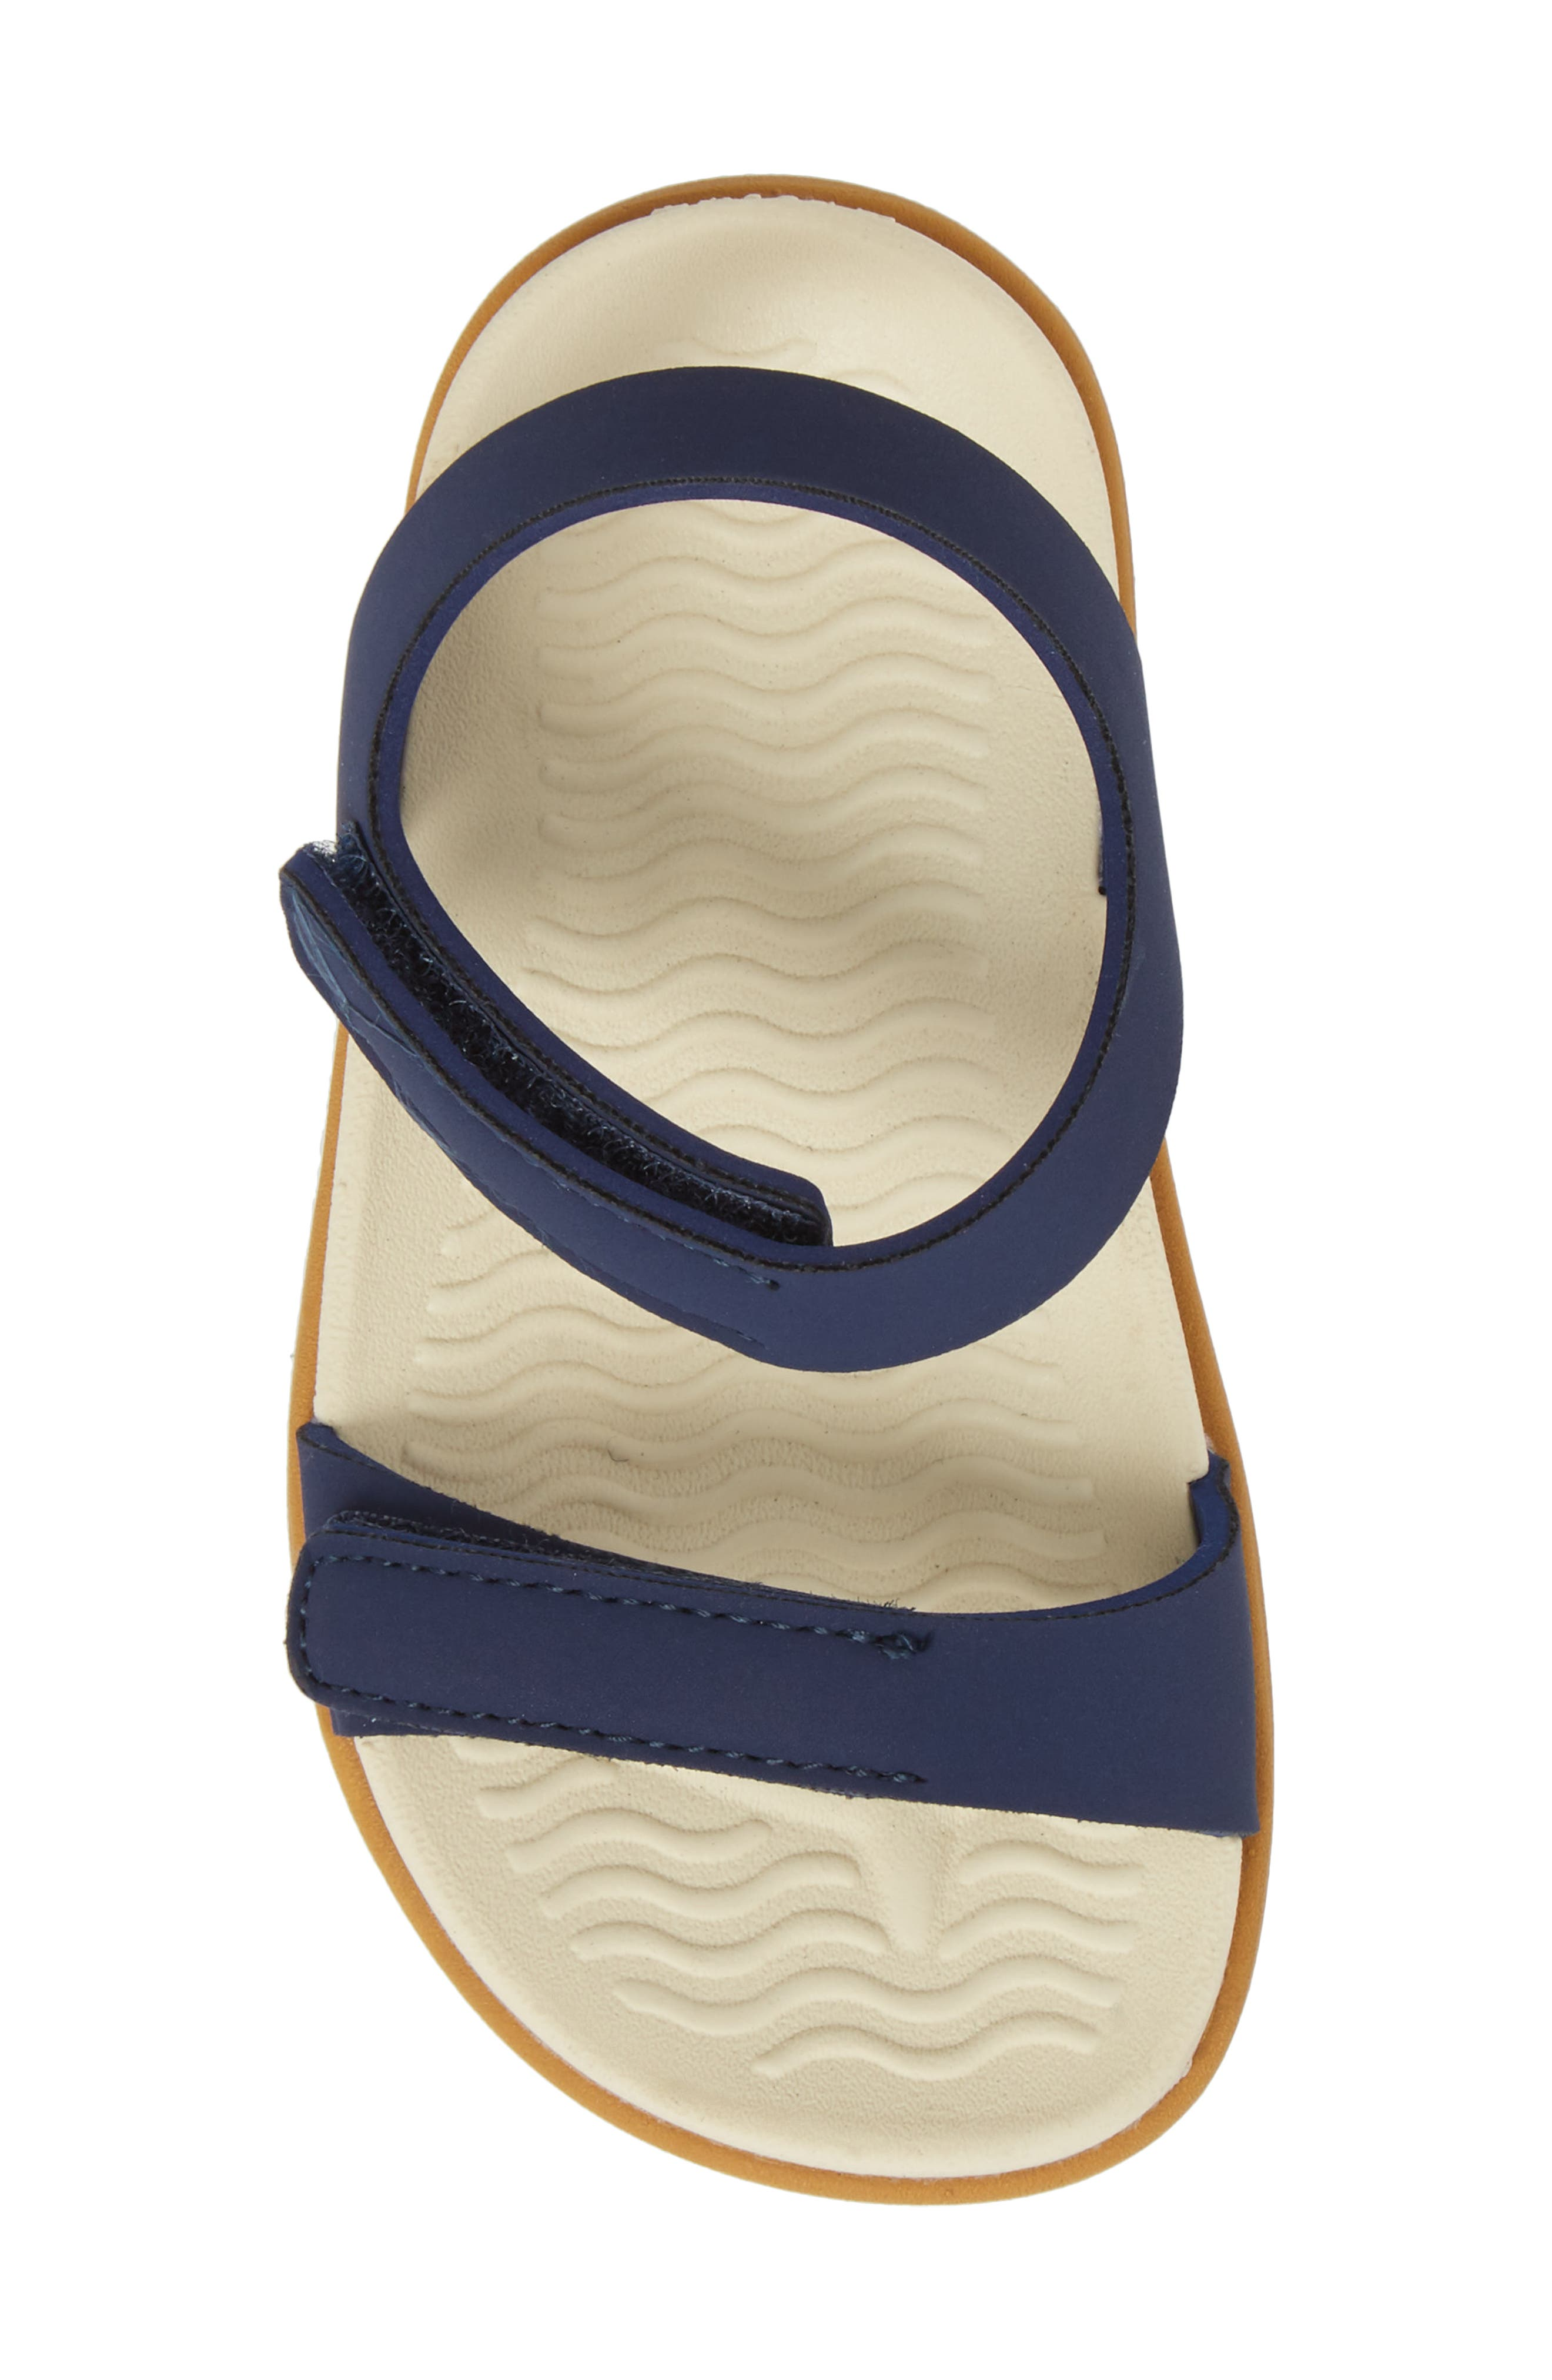 Charley Child Waterproof Flat Sandal,                             Alternate thumbnail 5, color,                             BLUE/ BONE WHITE/ TOFFEE